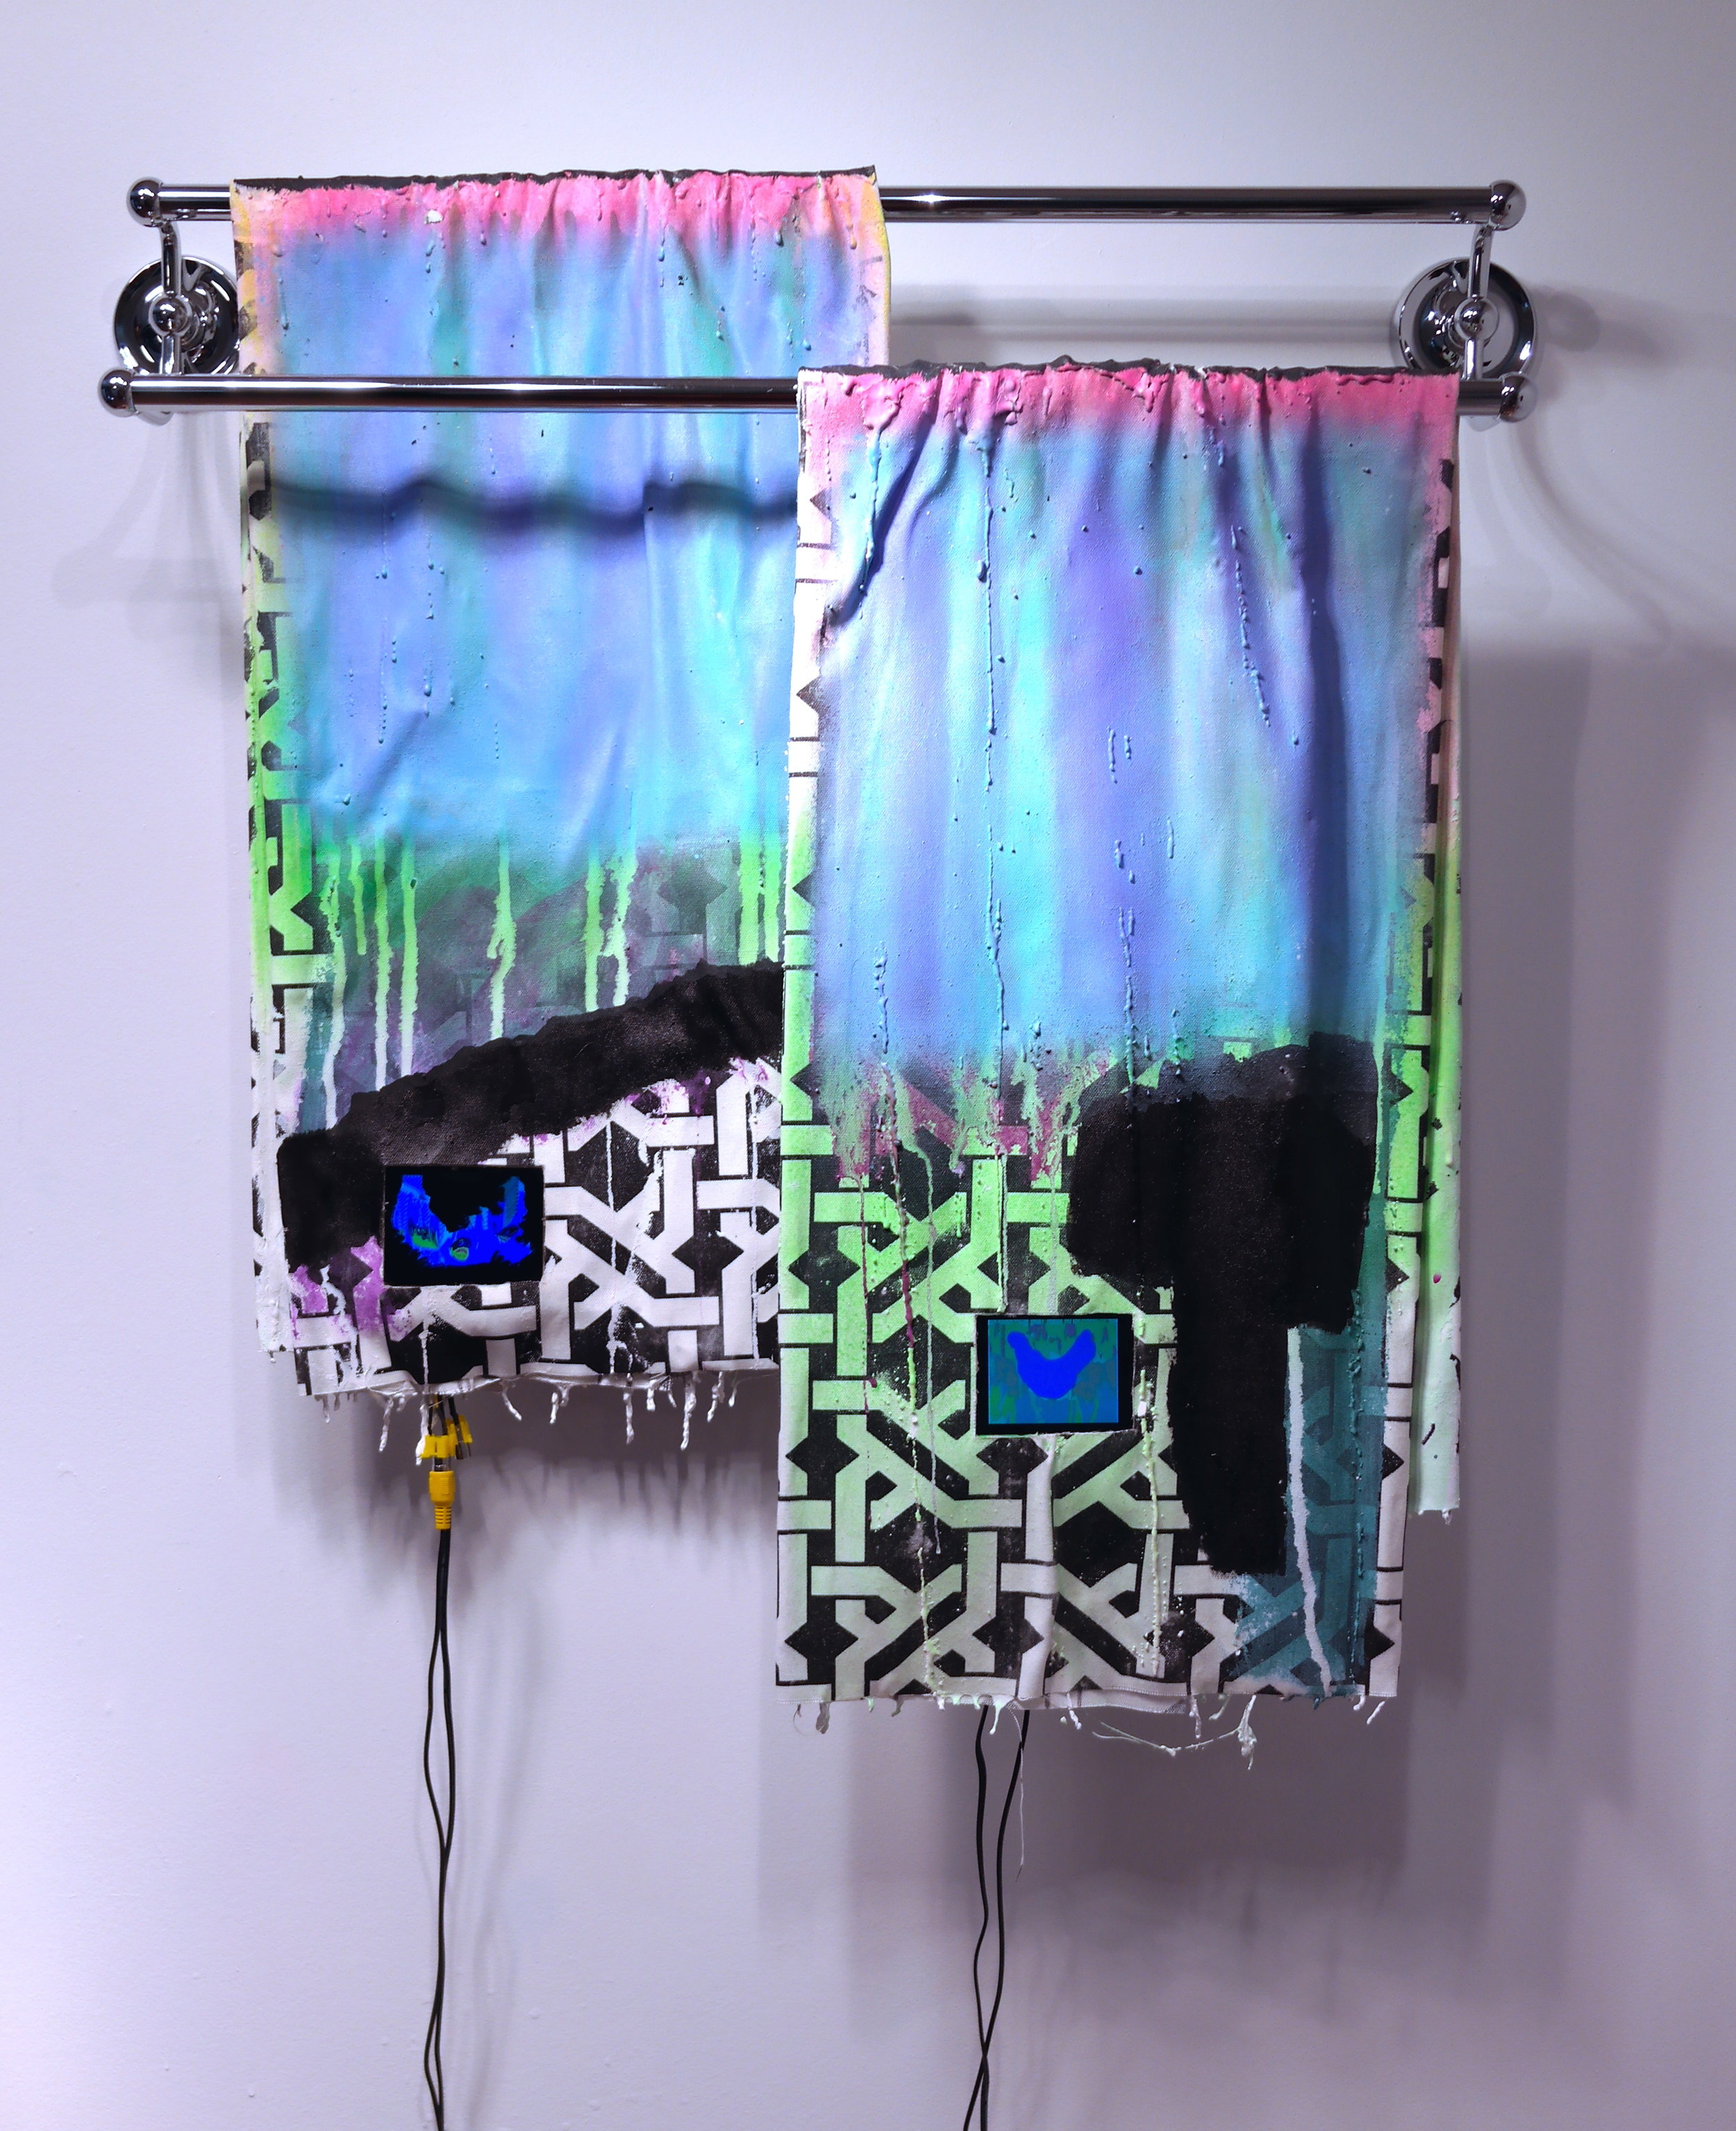 "+Arousal-Delight, 2015, 29""x25"" acrylic, plaster, metal, monitors, animation, media players on fabric."